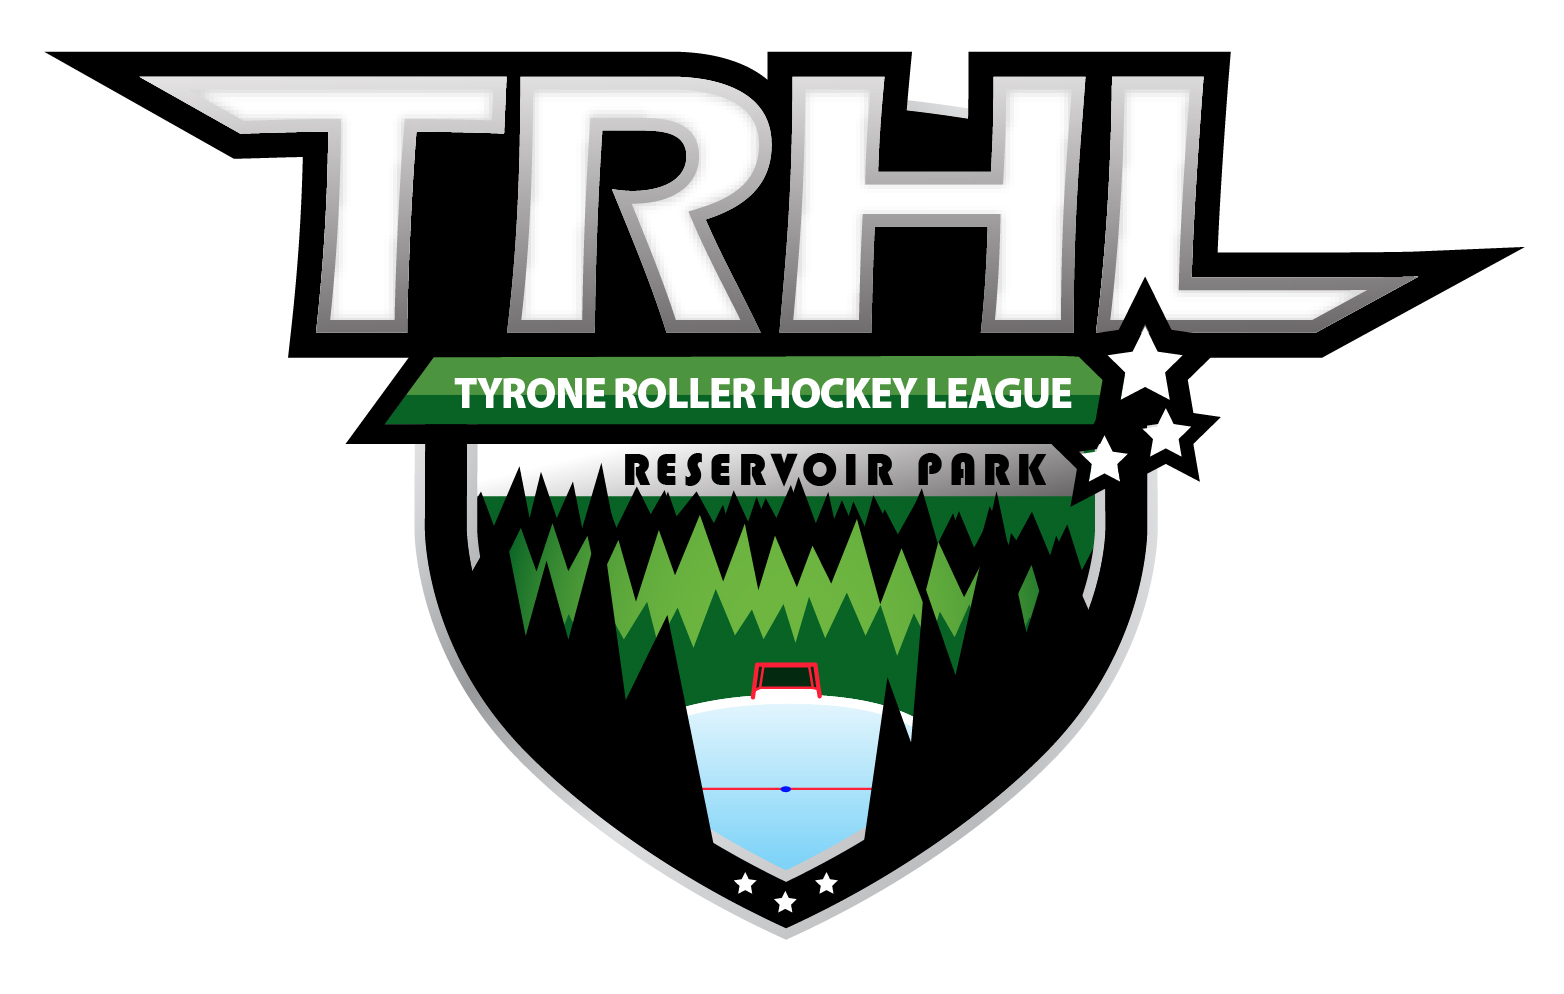 TRHL was started in 2008. The league runs from early May through August each year and culminates in the annual Summer Classic championship series to claim the coveted 'Mayor's Cup'.  Games are played on Sundays at Tyrone's Reservoir Park outdoor hockey rink. The league is for ages 14 and up.